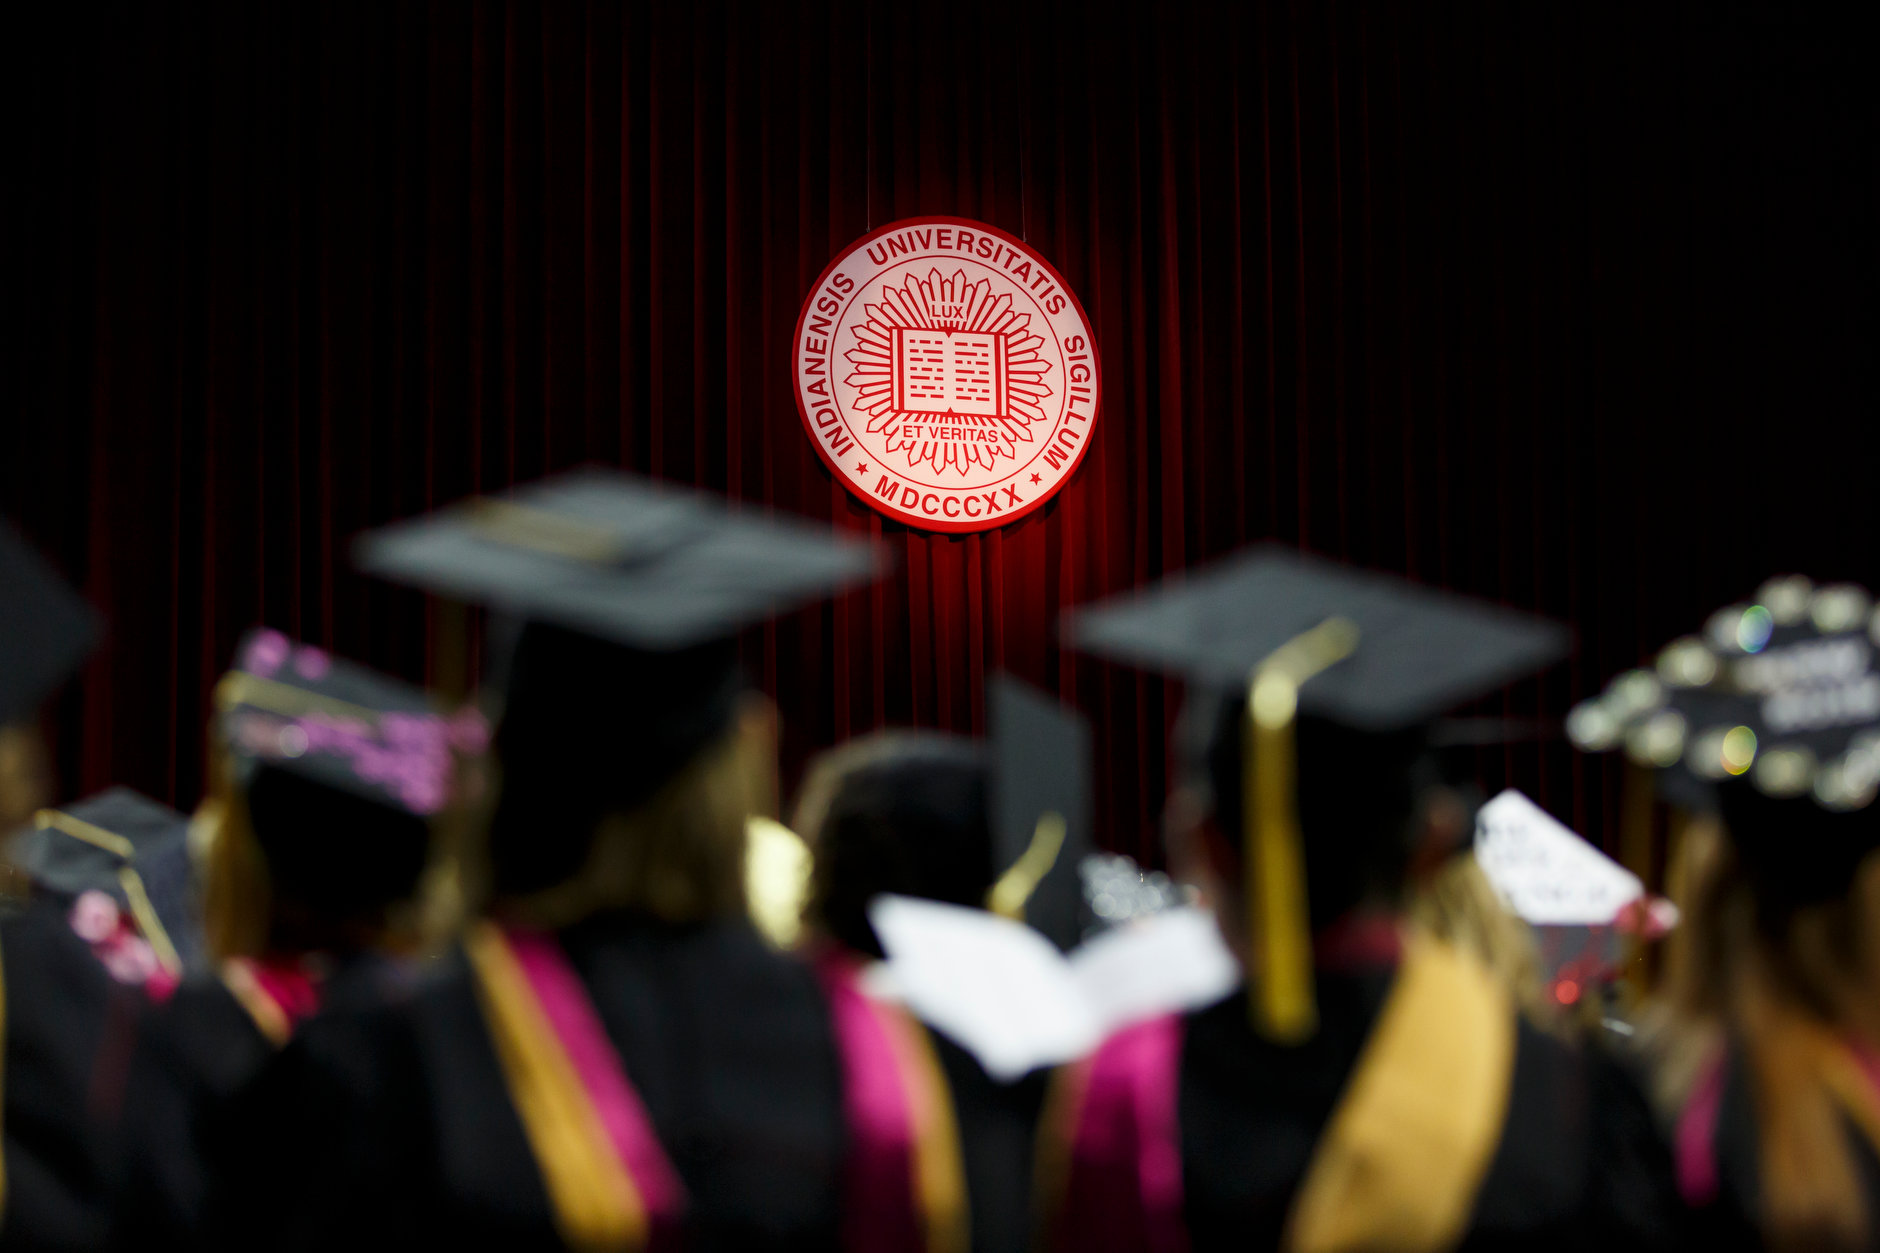 The Indiana University seal is pictured during the IU South Bend Commencement at the University of Notre Dame on Tuesday, May 7, 2019. (James Brosher/Indiana University)